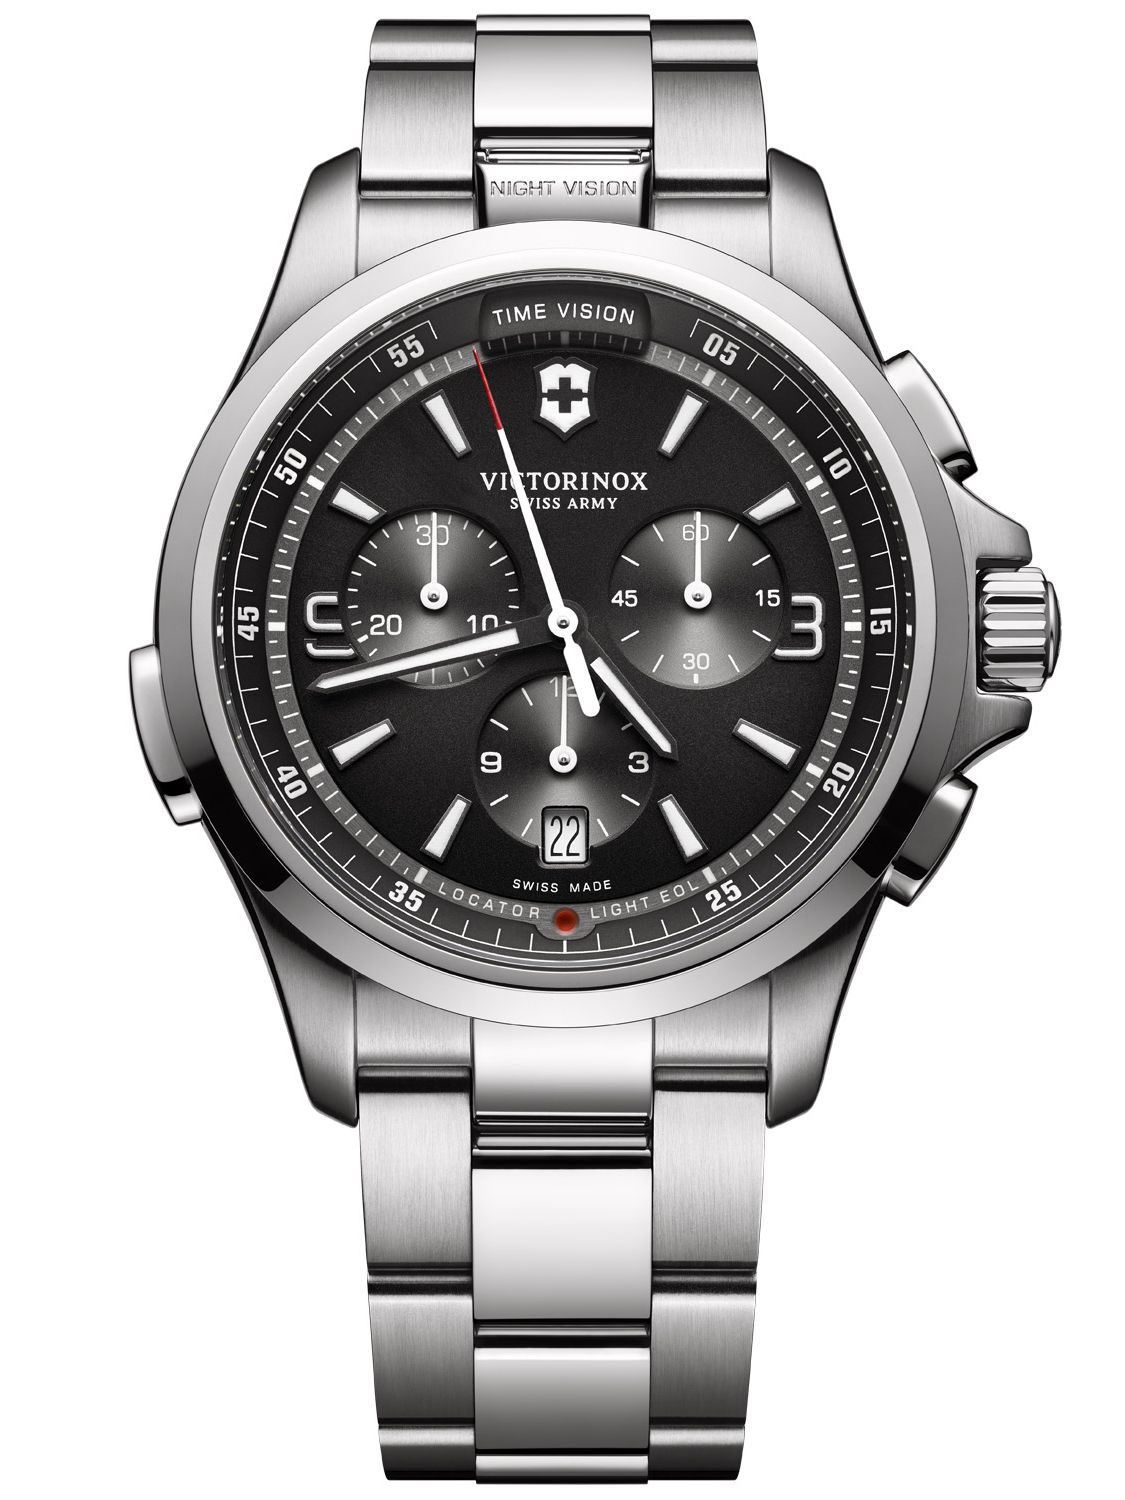 Victorinox 241780 Herrenuhr Night Vision Chrono...